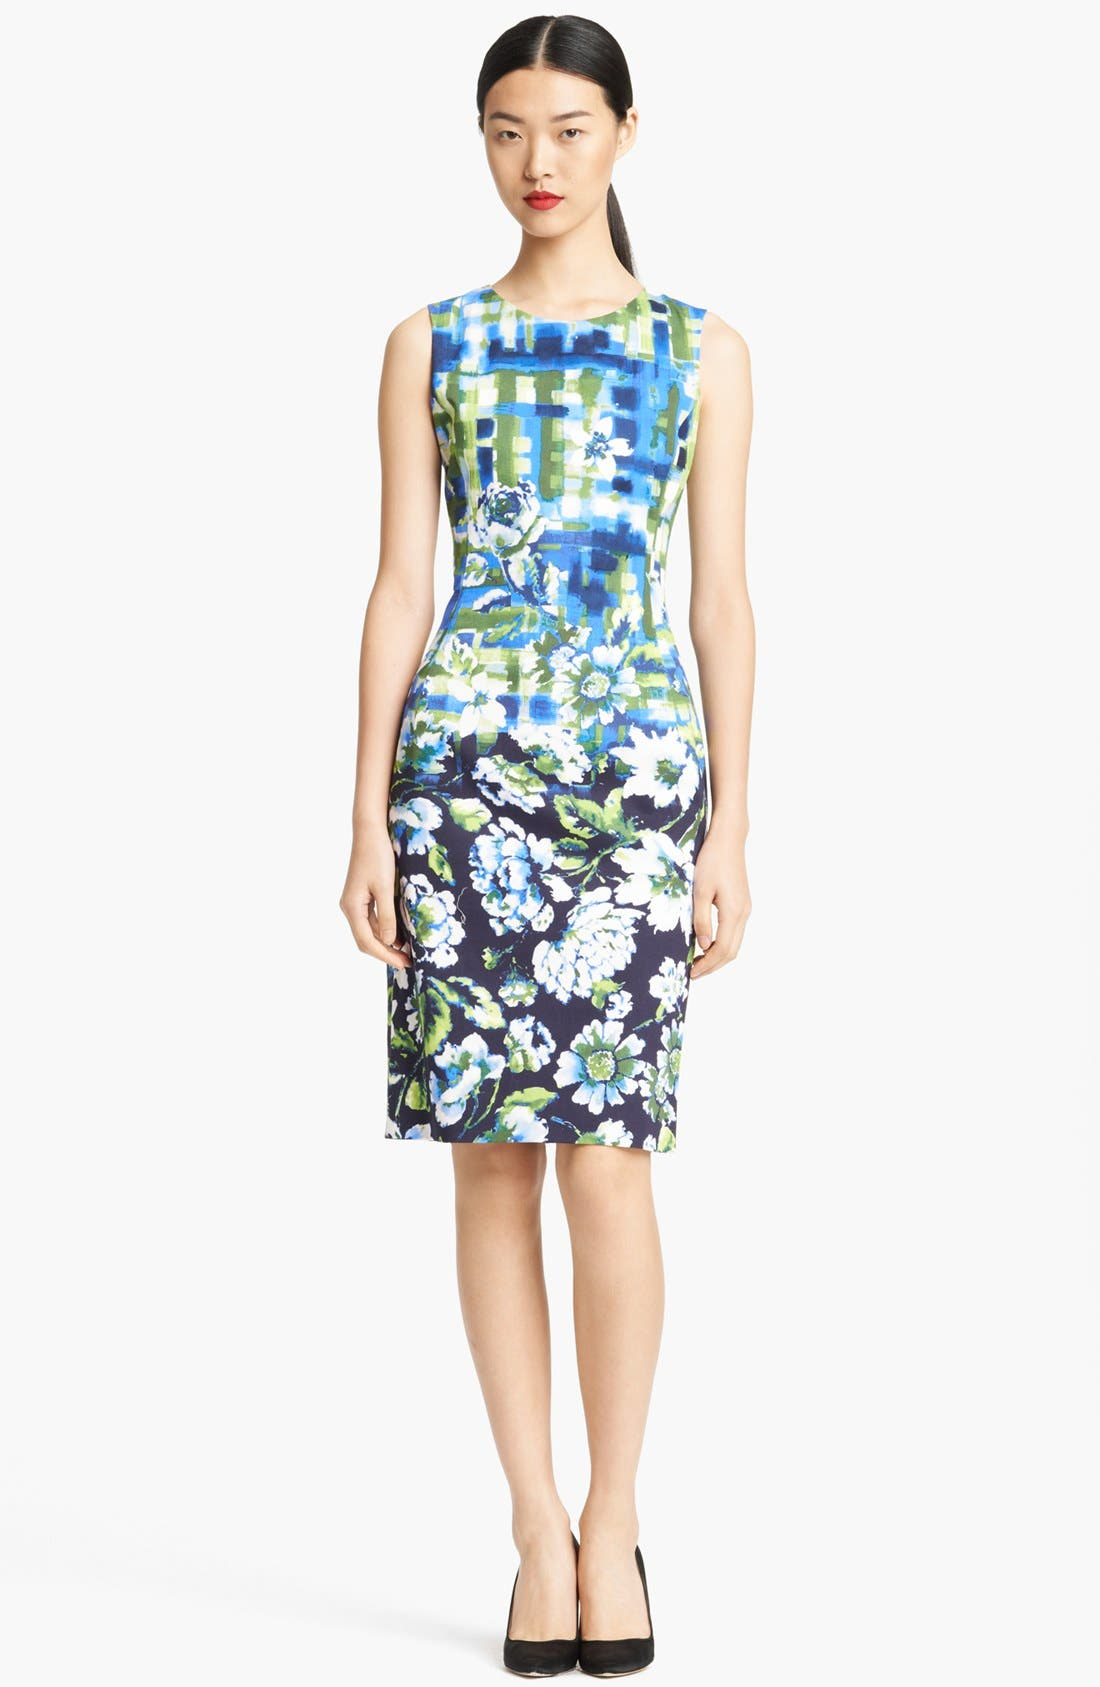 Main Image - Oscar de la Renta Painted Floral Print Sheath Dress